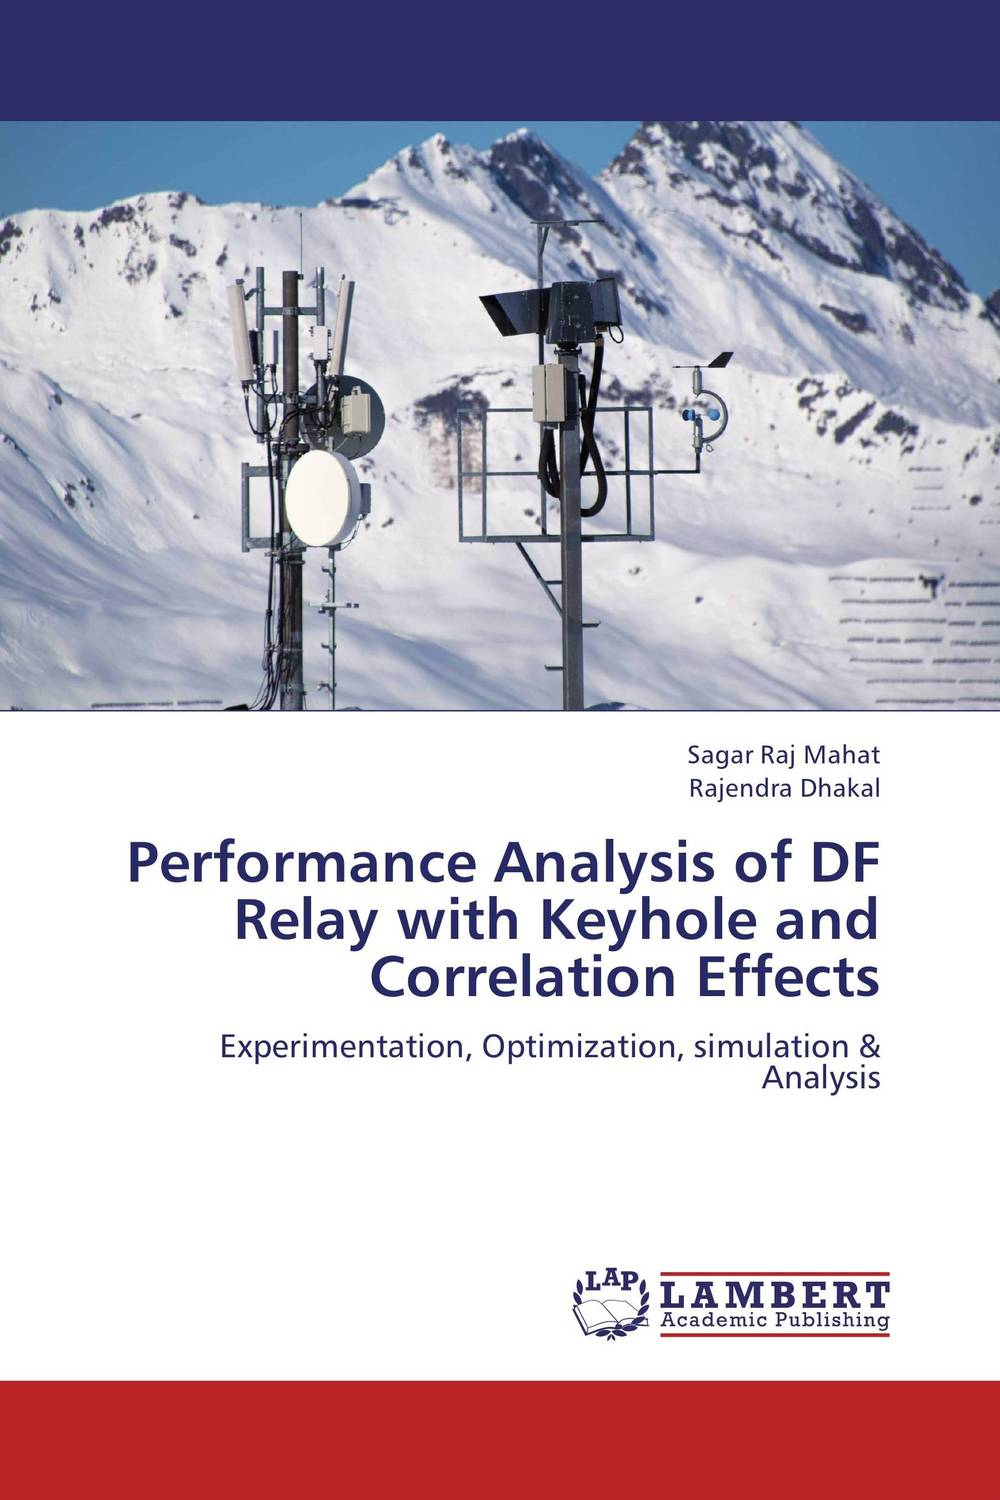 Performance Analysis of DF Relay with Keyhole and Correlation Effects